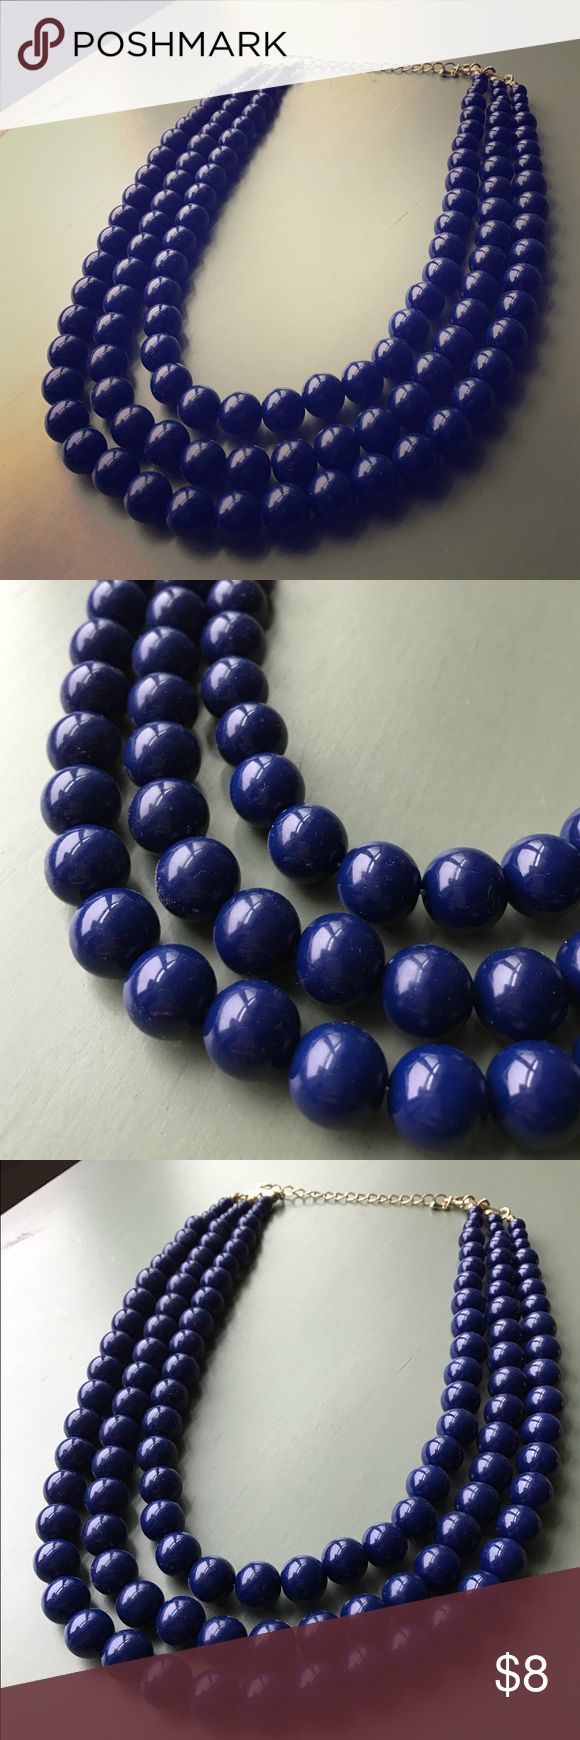 Layered navy blue pearl necklace Layered navy blue pearl necklace. 19.5 inches in length. Jewelry Necklaces